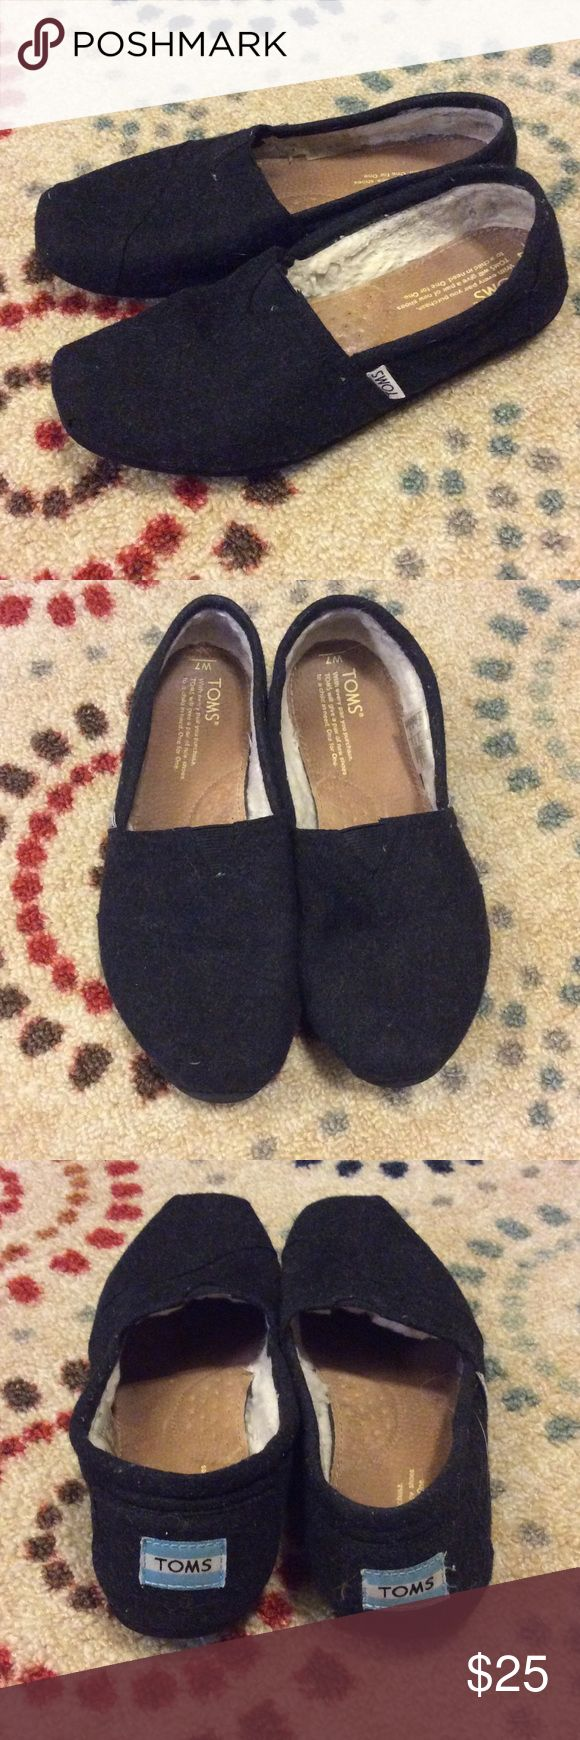 Women's TOMS Shoes Toms shoes in GUC. Black wool exterior with fur interior. TOMS Shoes